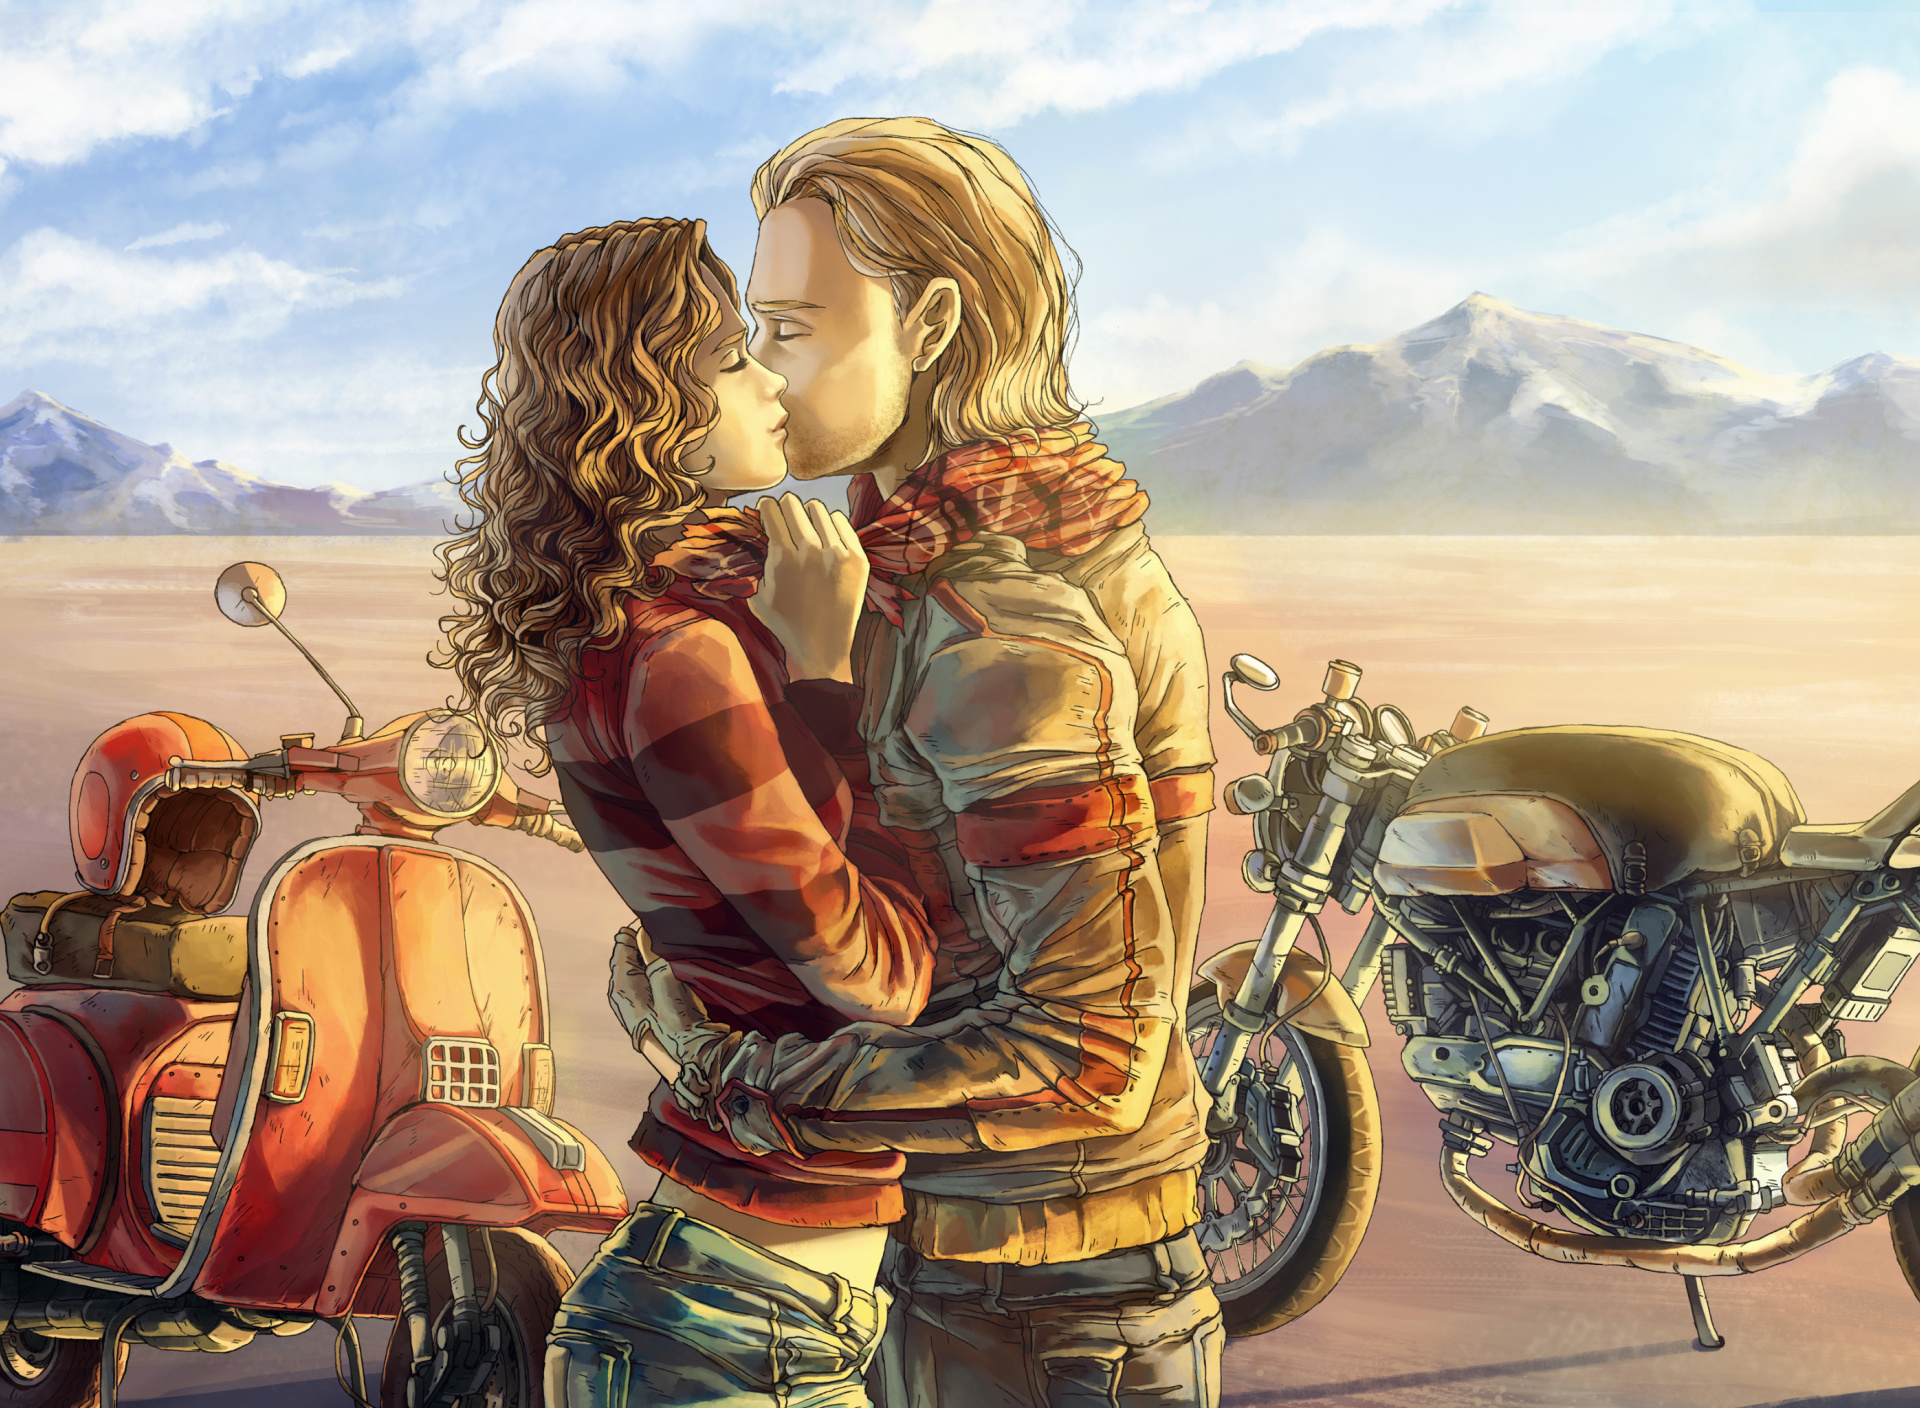 Bikerkiss Biker Kiss Wallpaper for